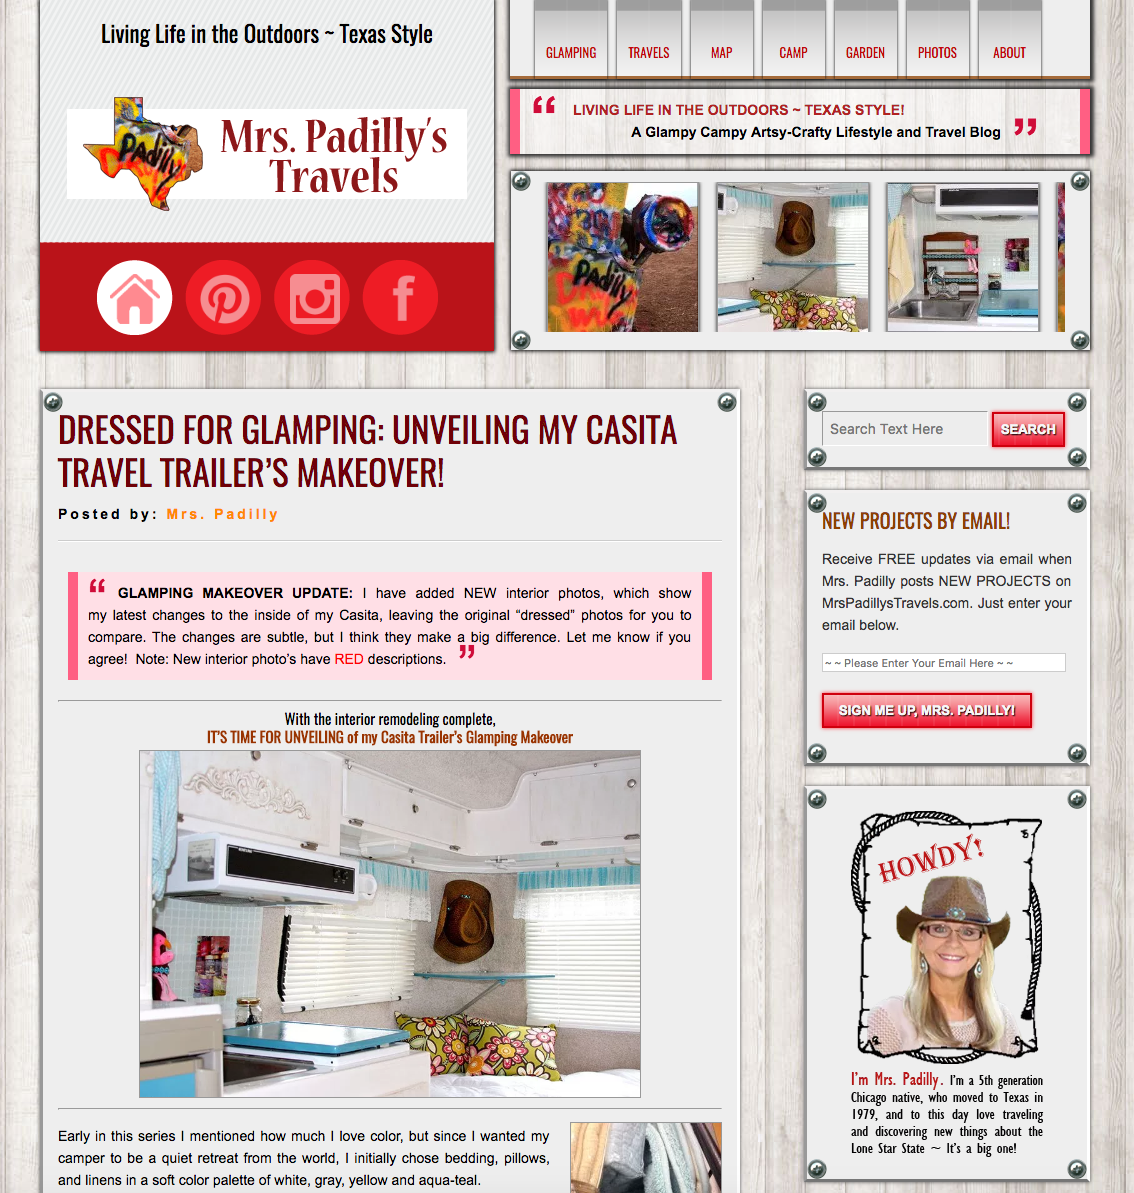 Mrs. Padilly's Travels Website